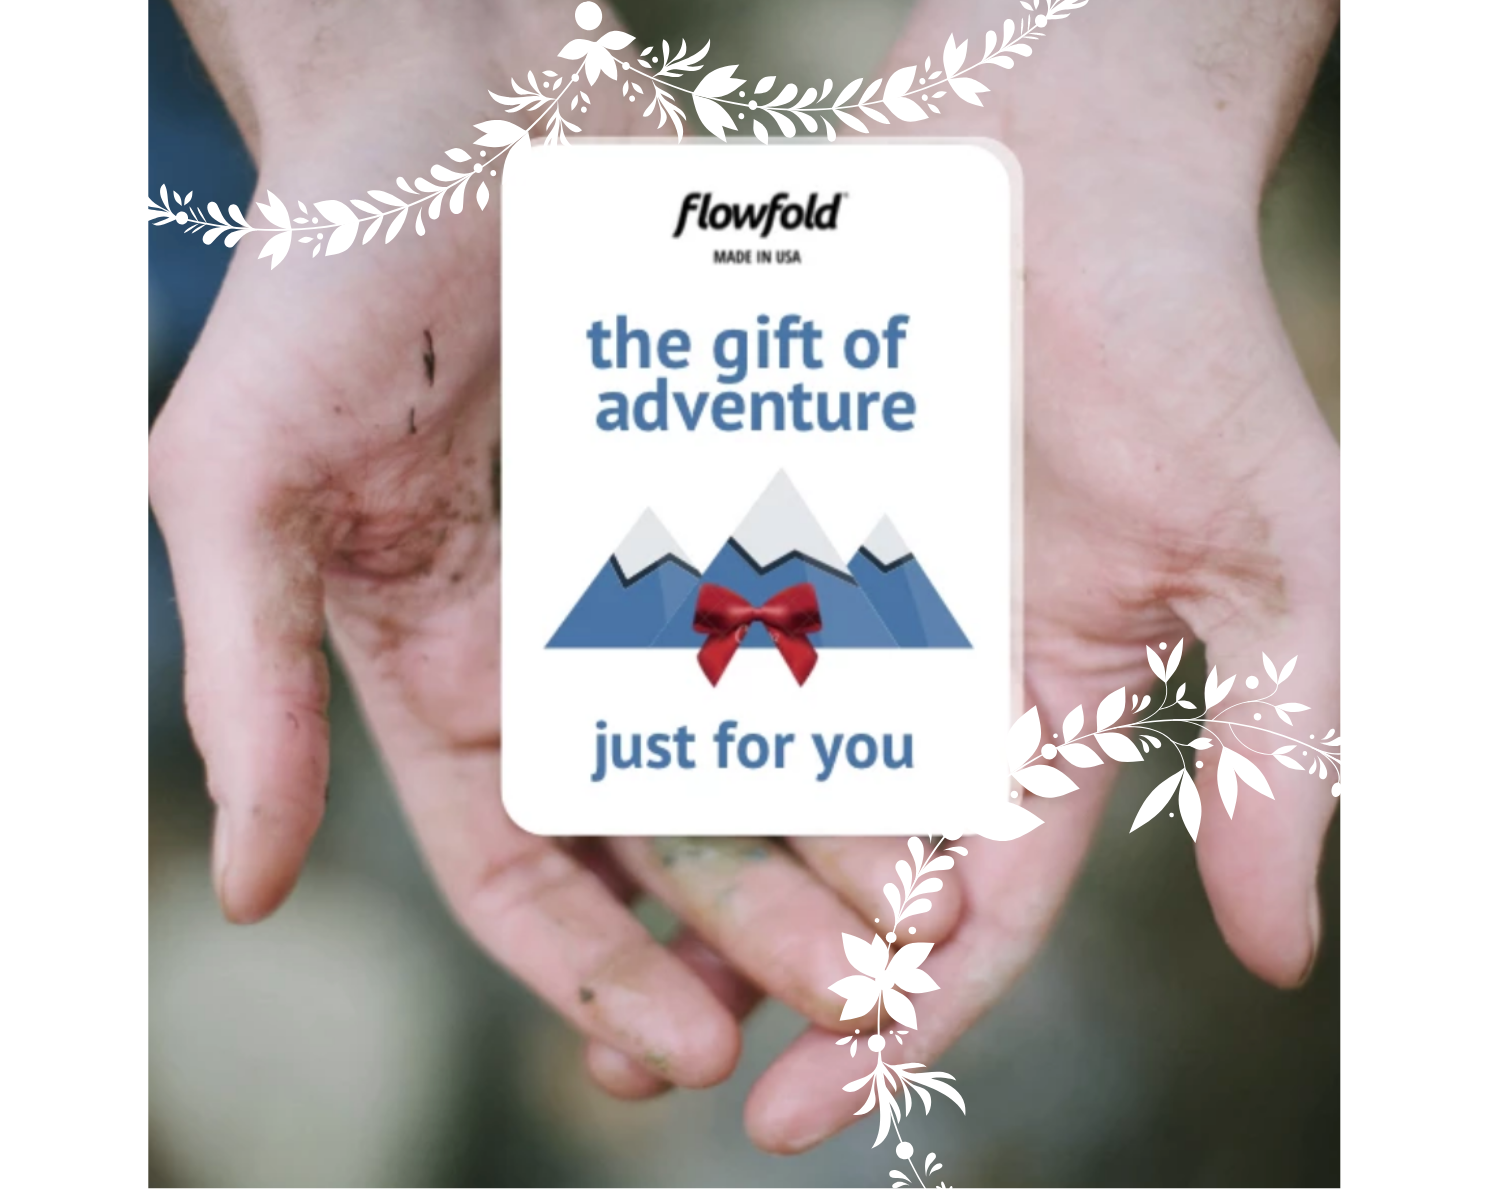 Flowfold Gift Cards